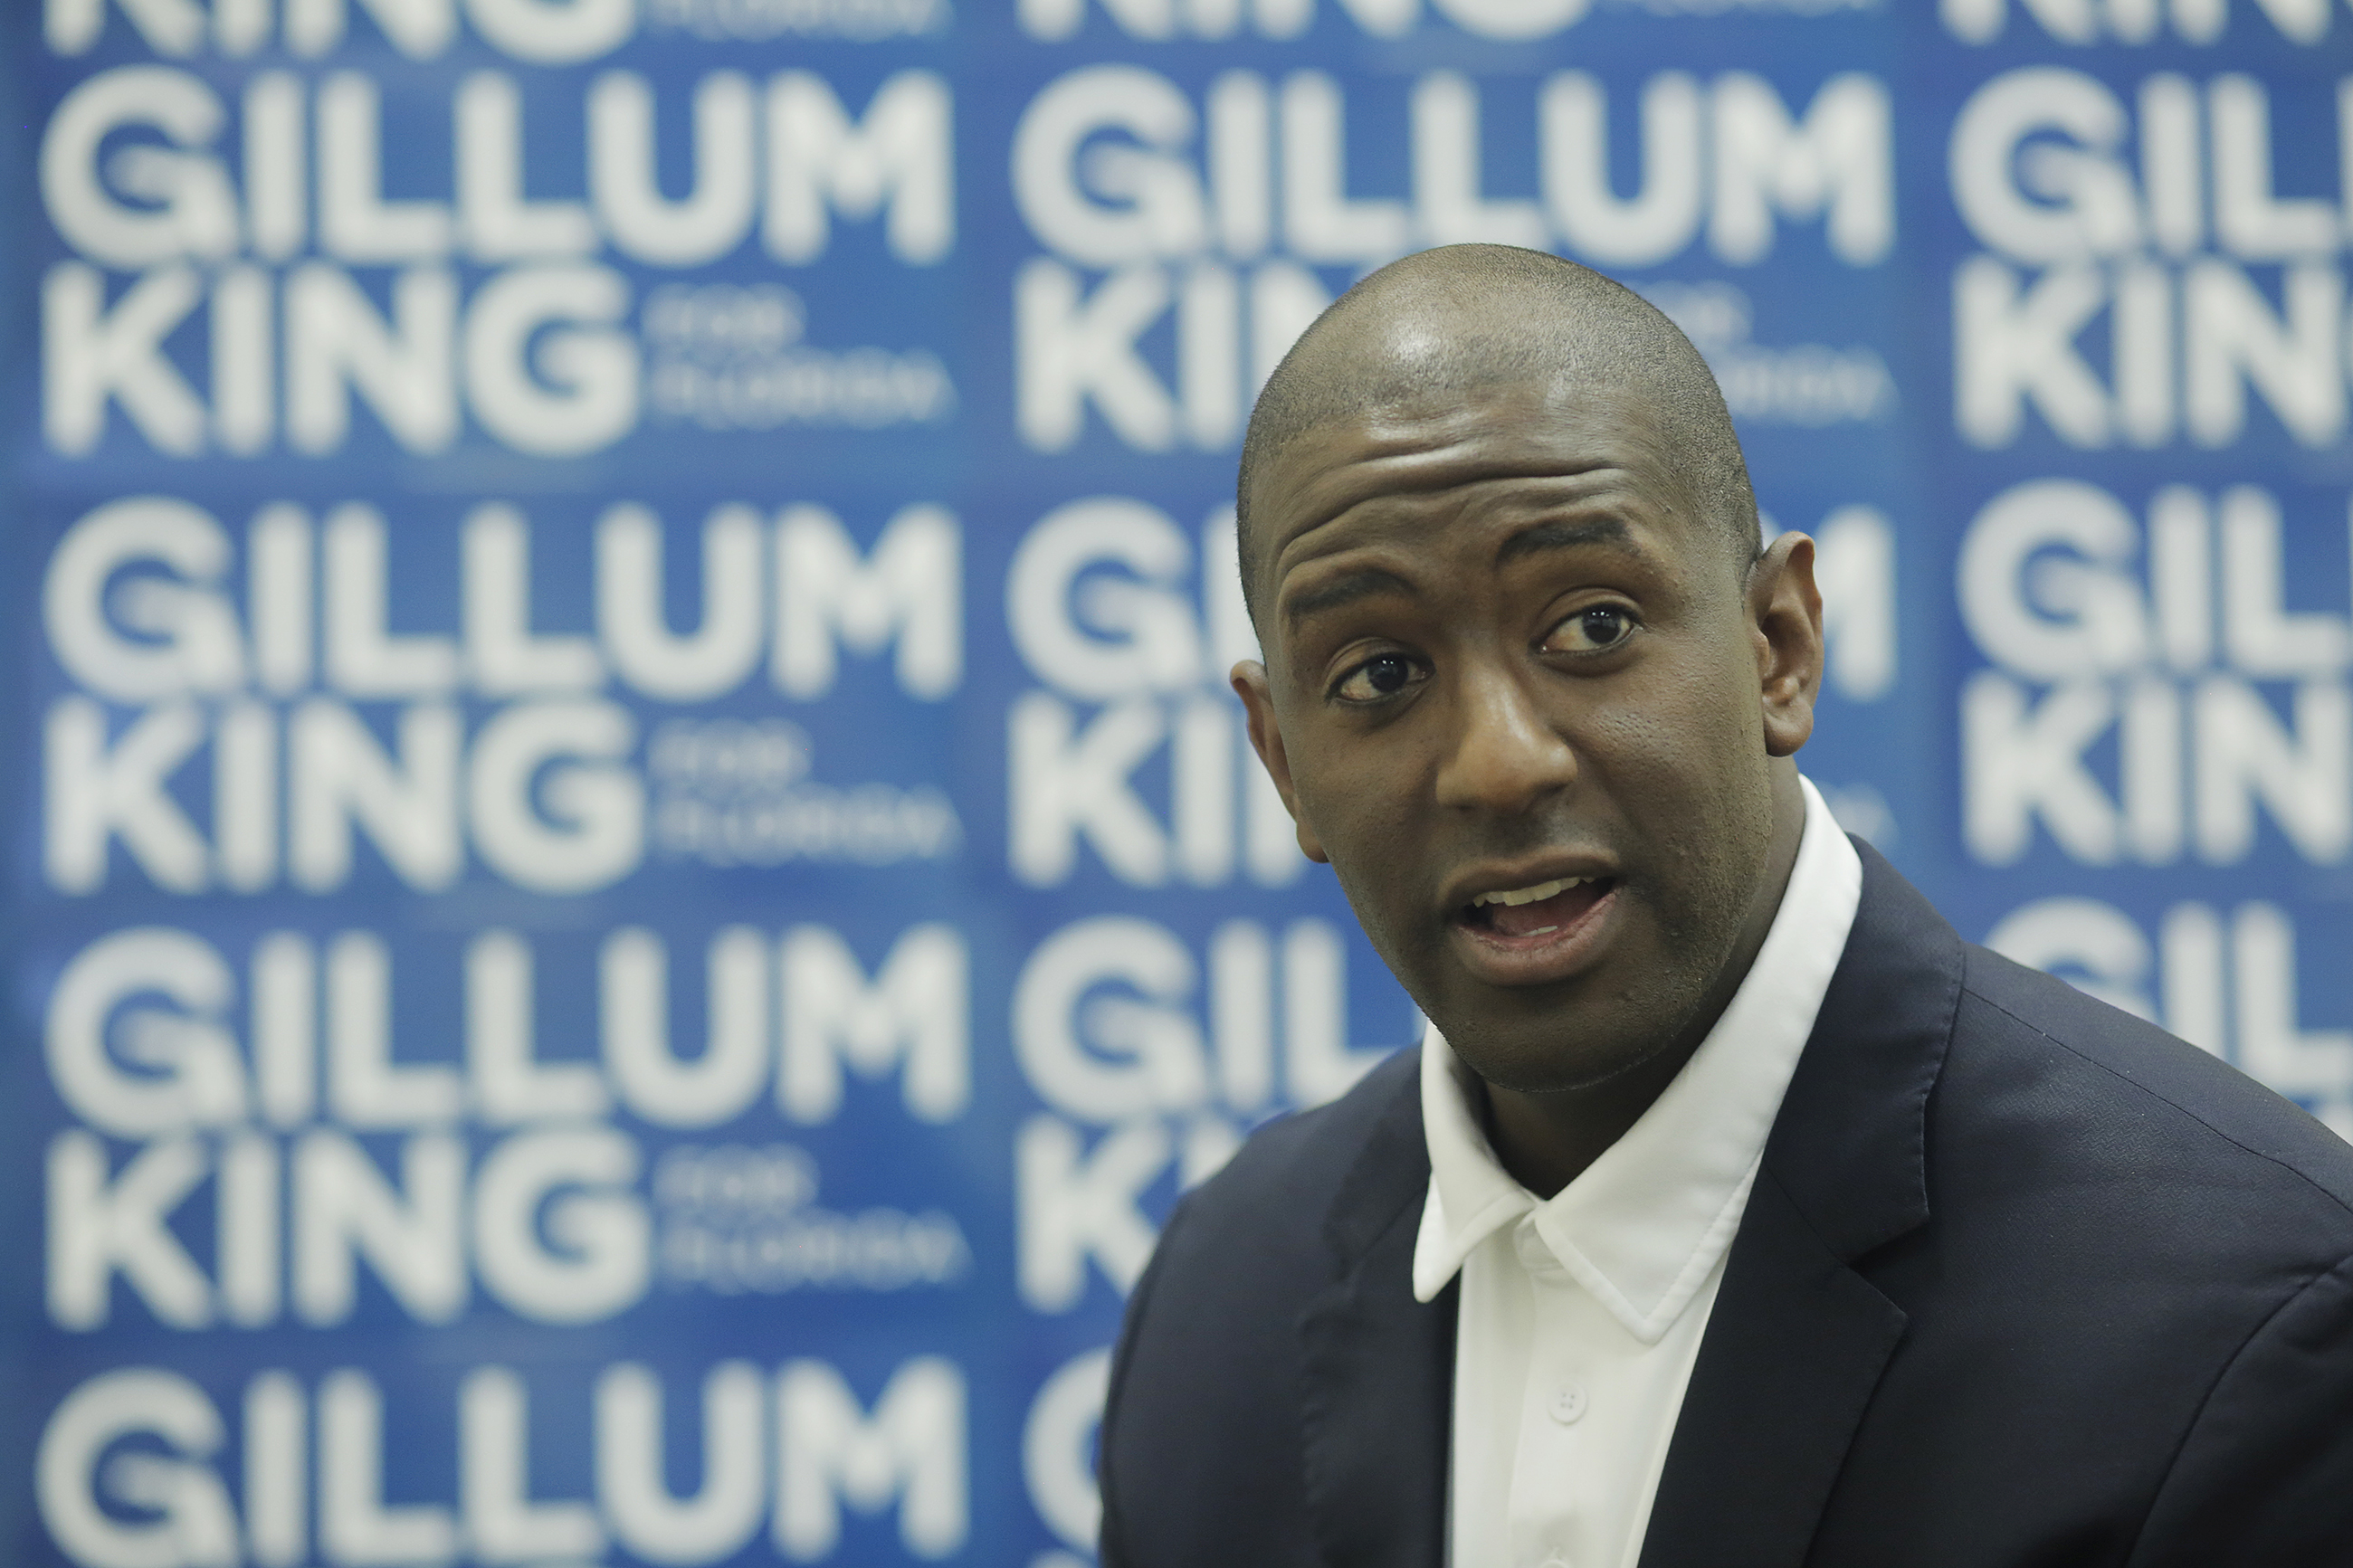 Federal subpoena demands records on Andrew Gillum and his